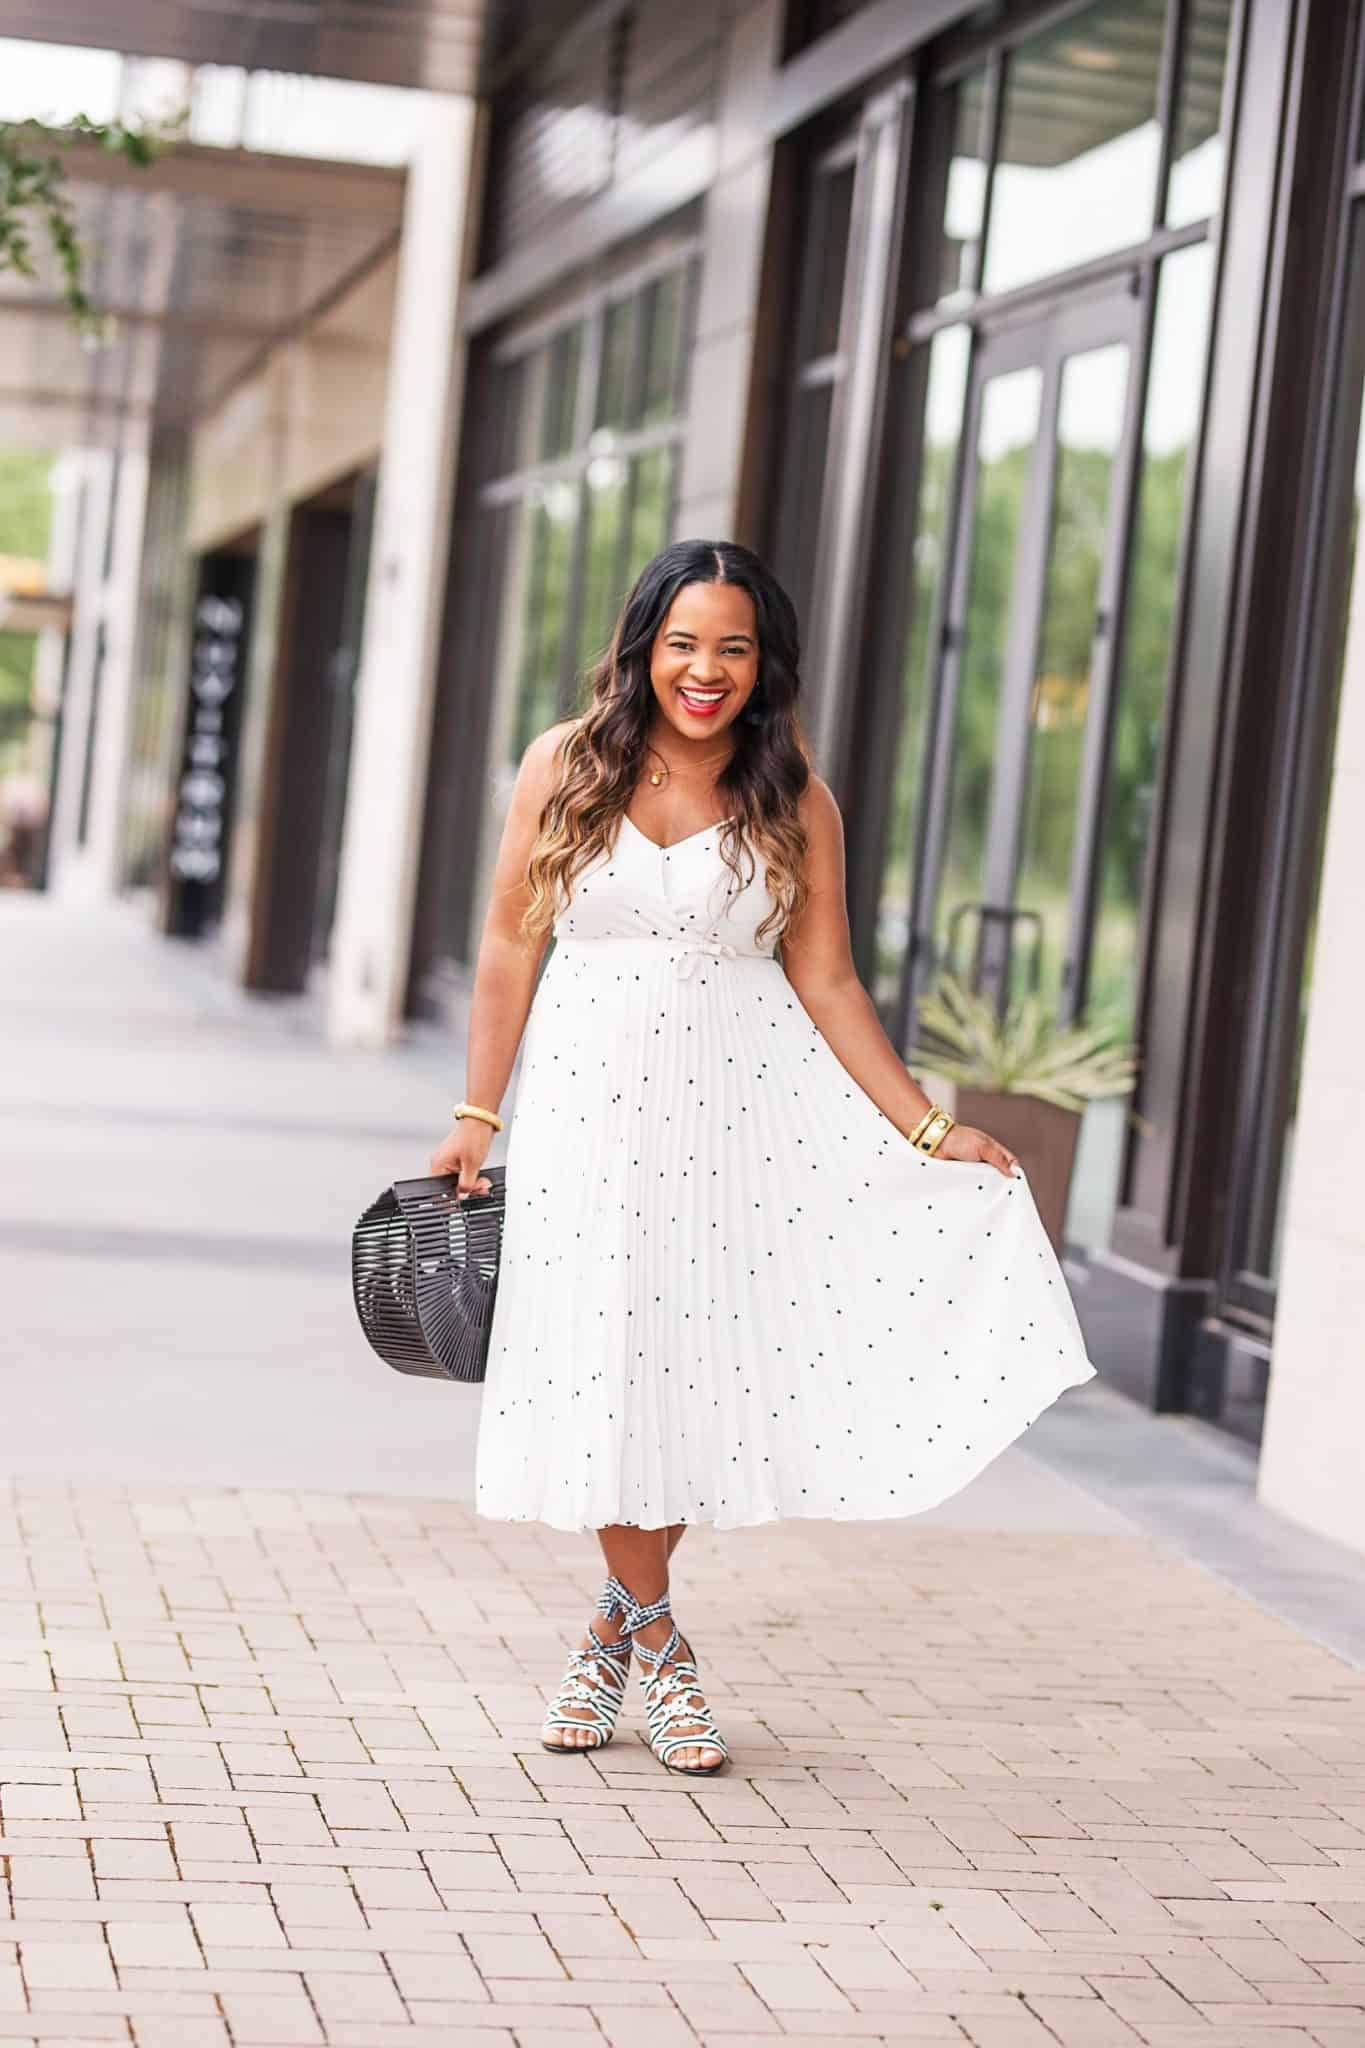 Top 10 dress styles to own featured by top US fashion blog, Glamorous Versatility